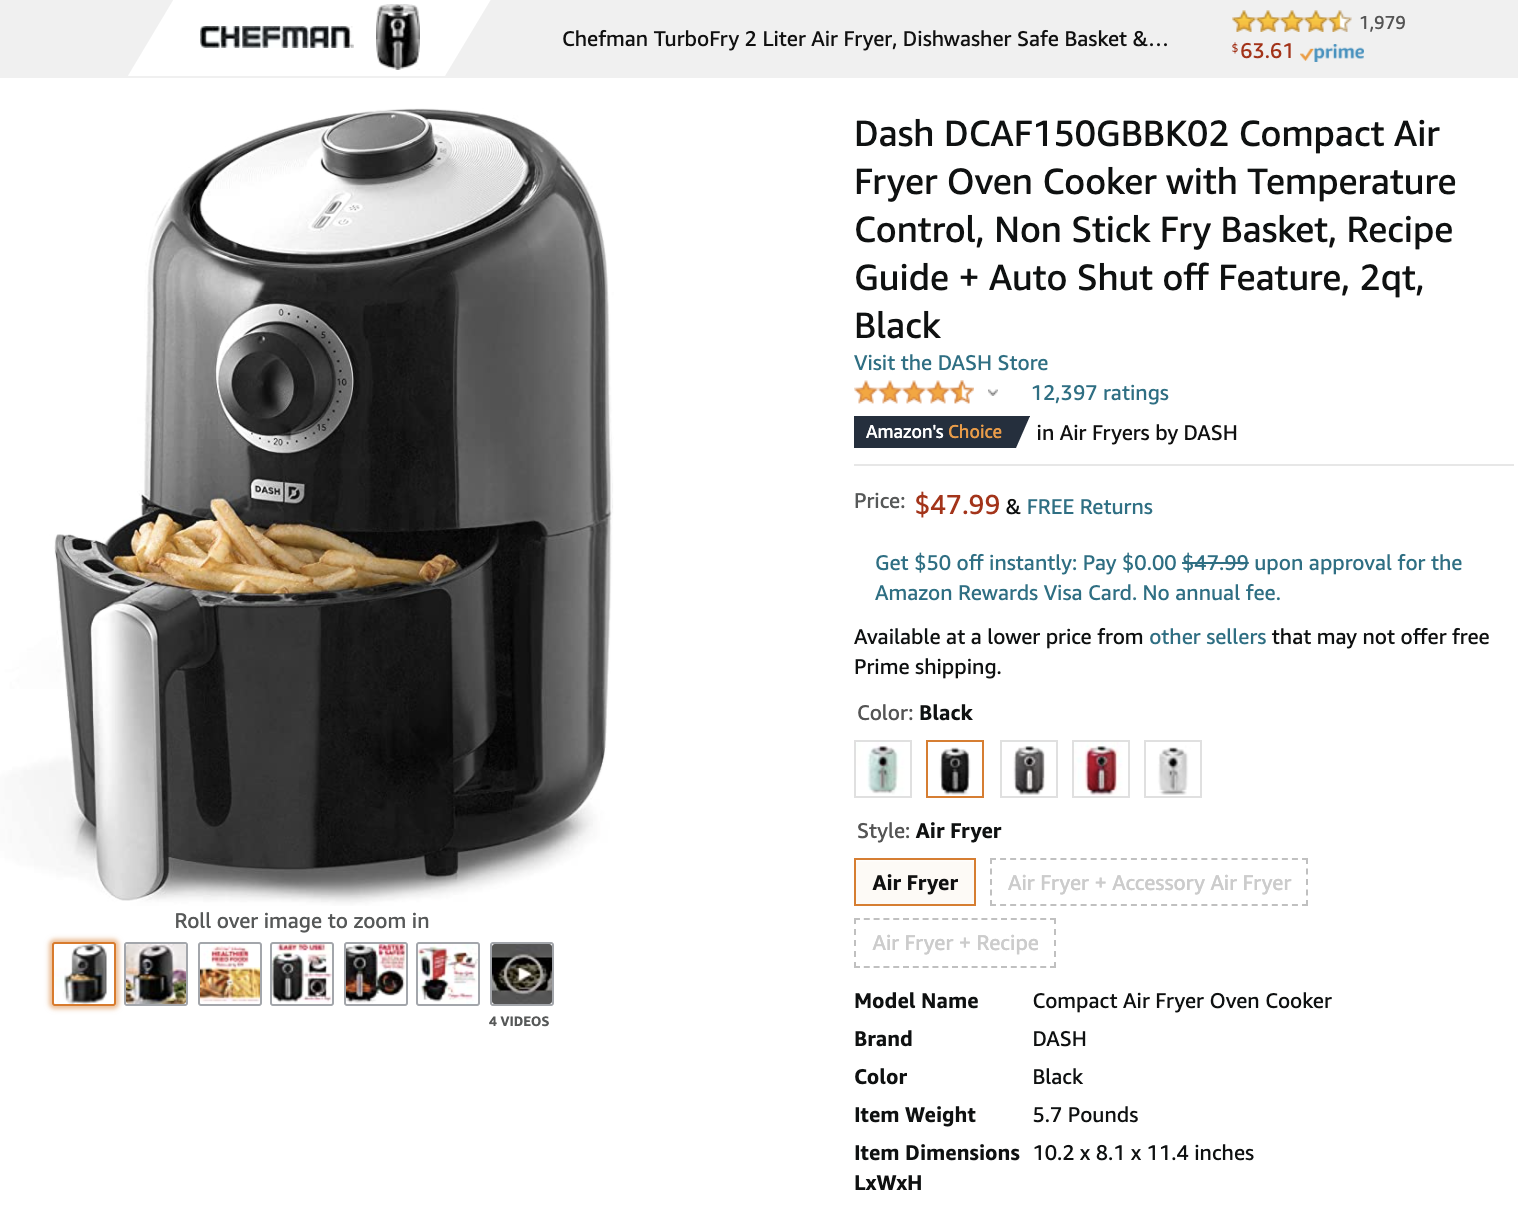 Amazon Manage Your Experiments: screenshot of a product listing for an air fryer